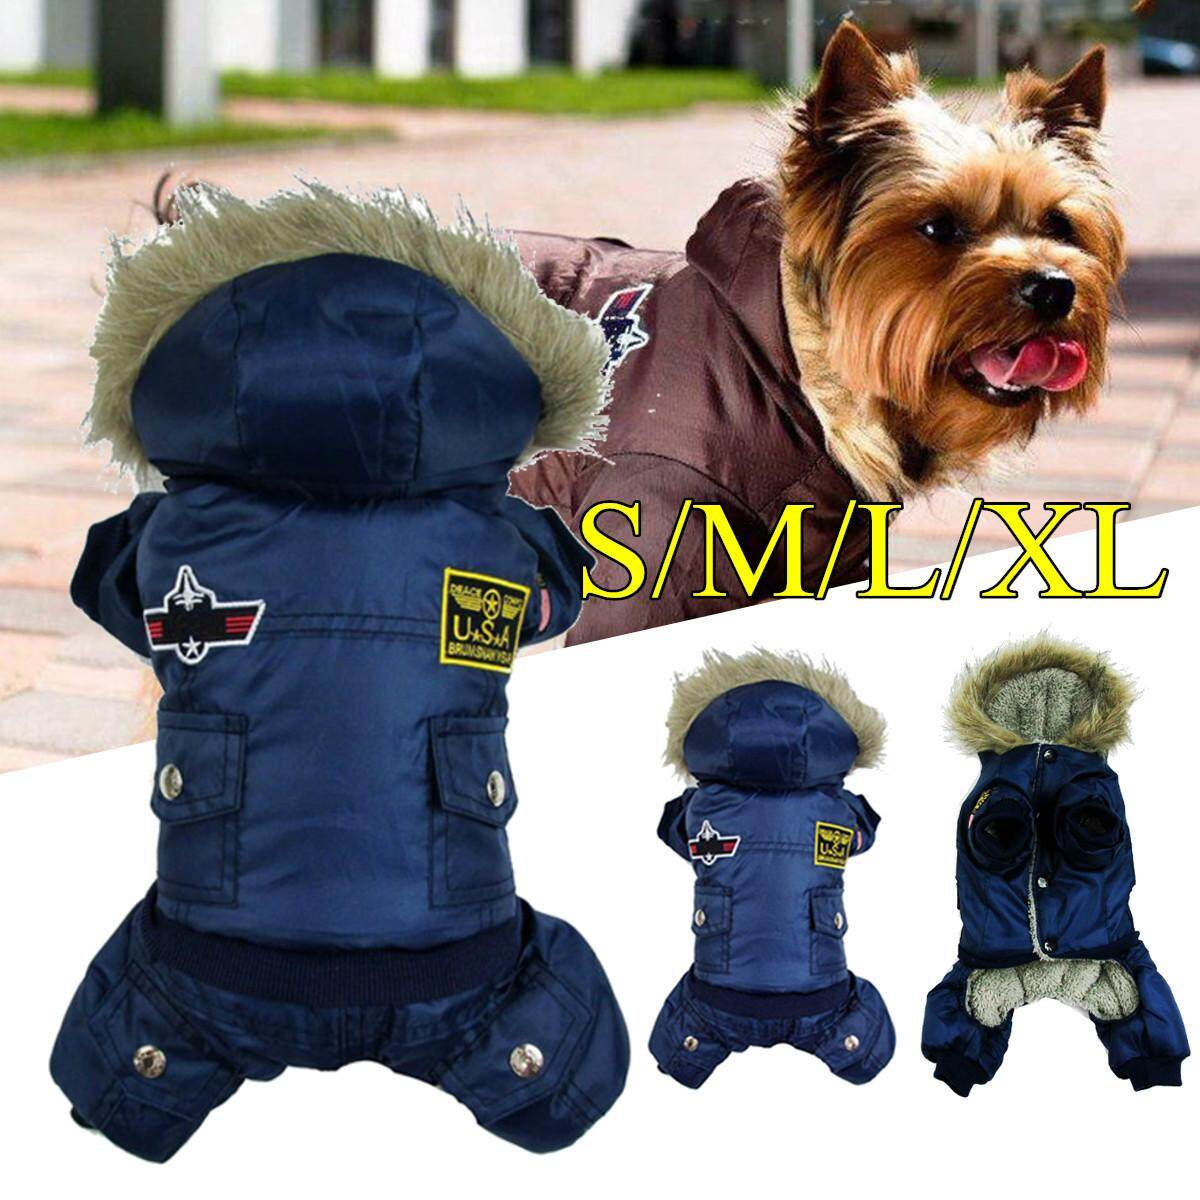 Waterproof Warm Winter Dog Coat Jacket Usa Air Force Pet Dog Cothes Xs-Xl  Xl By Moonbeam.